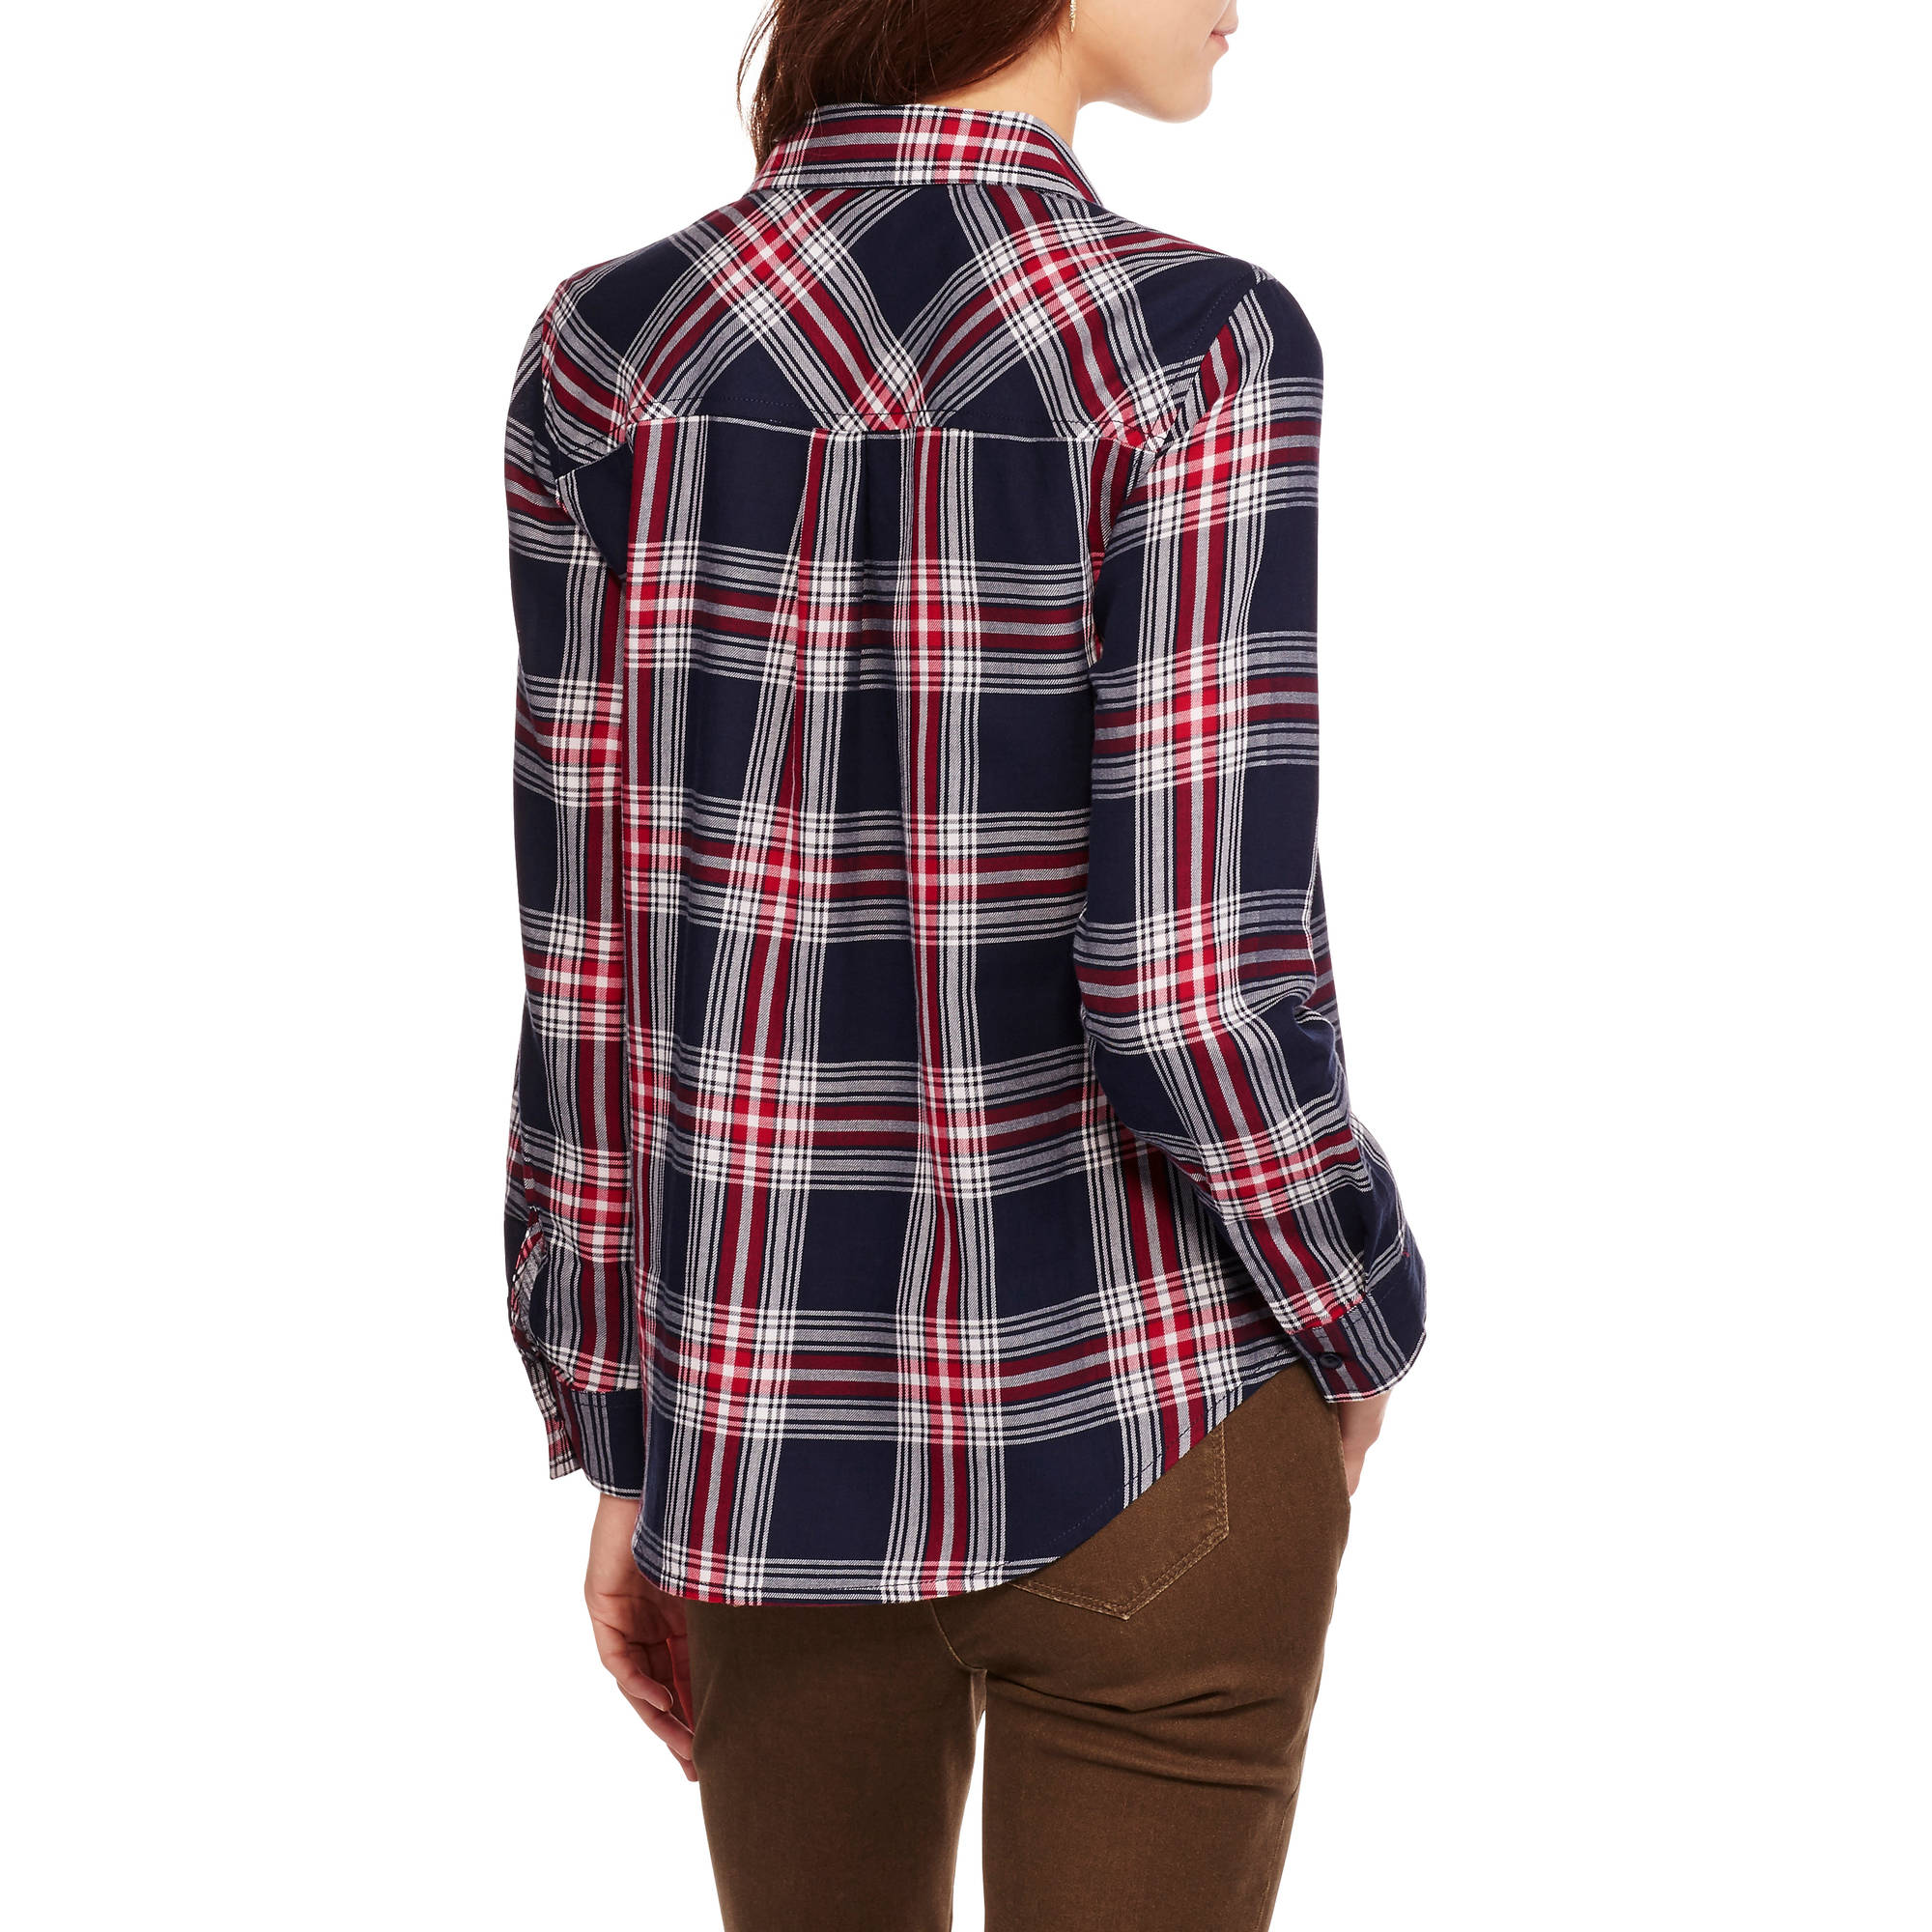 Rangeley Flannel Shirt Long Sleeve Slightly Fitted Plaid Men's Reg Free shipping · Great gear · Legendary service · Be an outsider